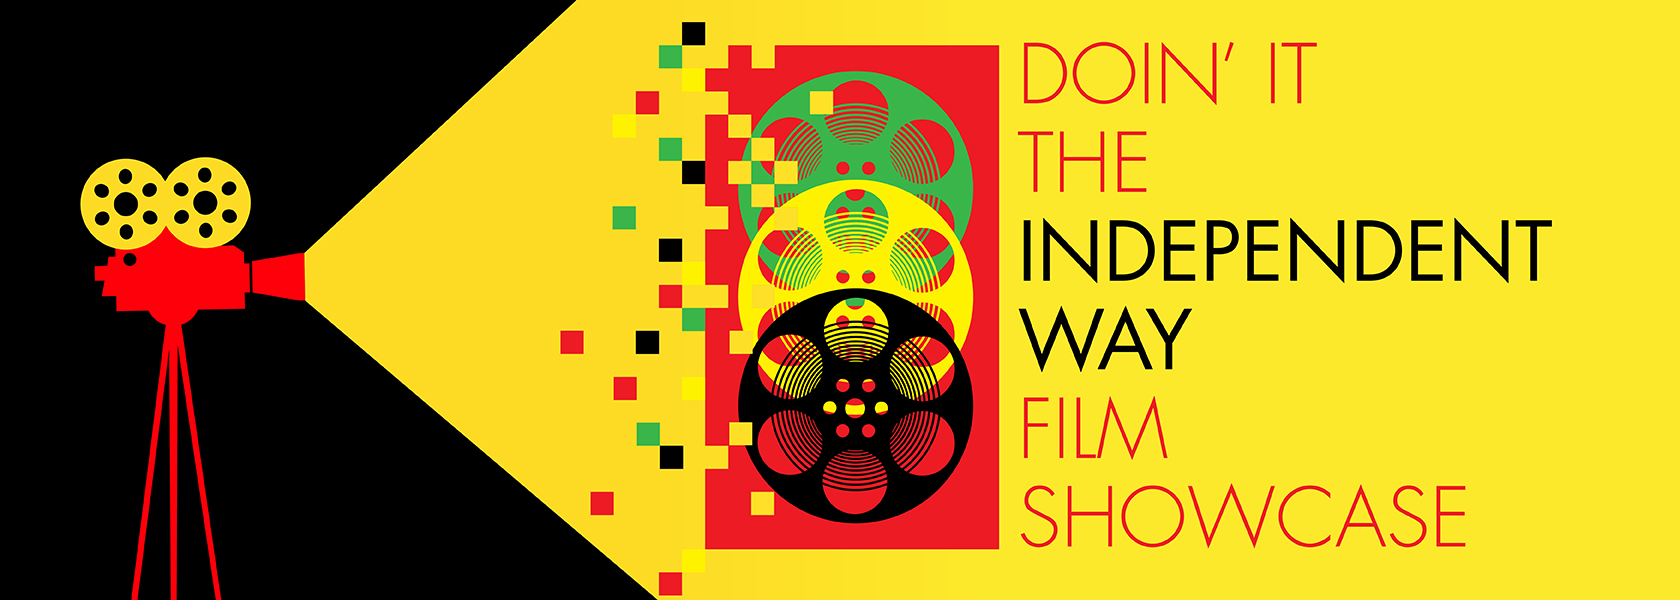 Doin' It The Independent Way Film Showcase